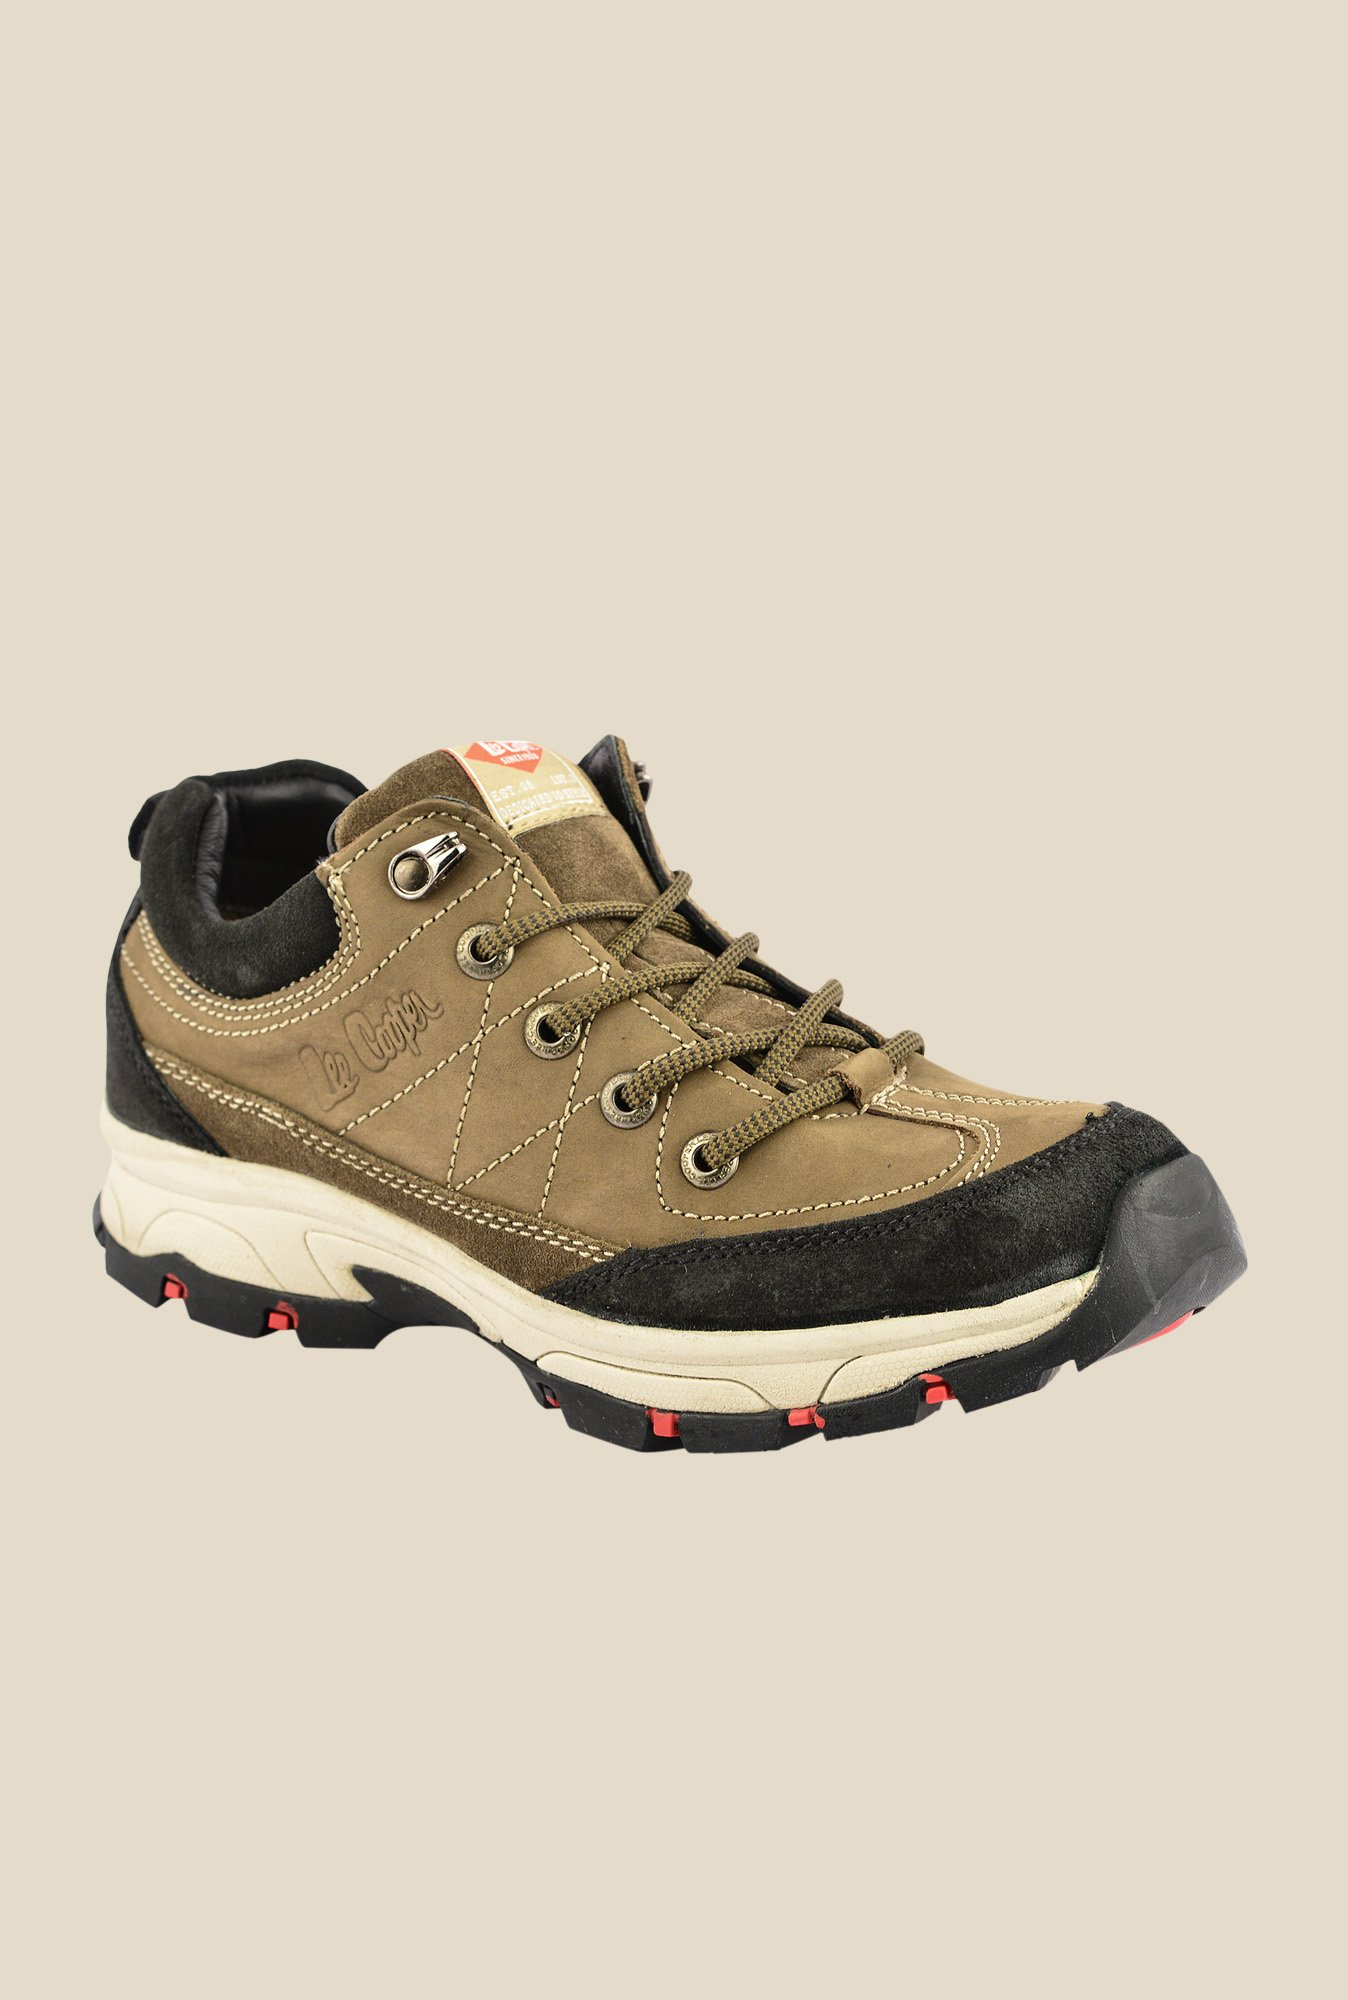 Lee Cooper Khaki & Black Casual Shoes